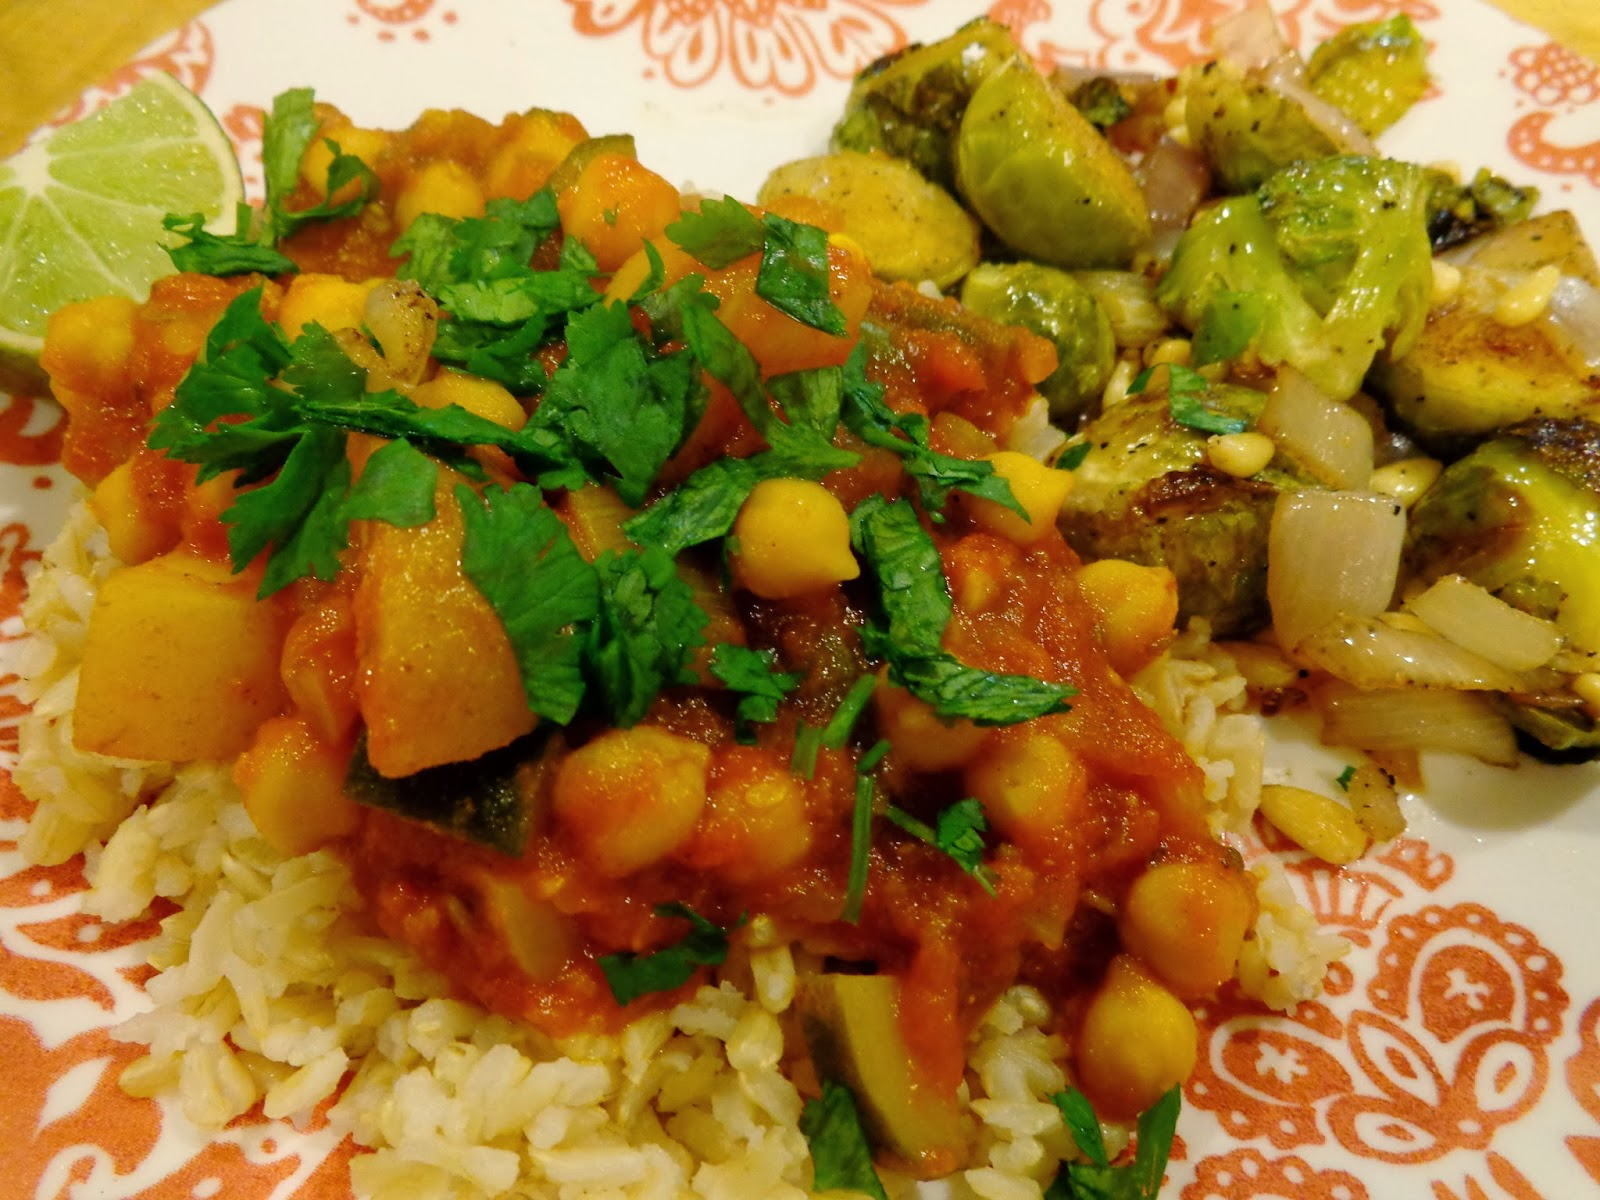 Eatin' Vegan in Smalltown, USA: Curry and Brussels Sprouts